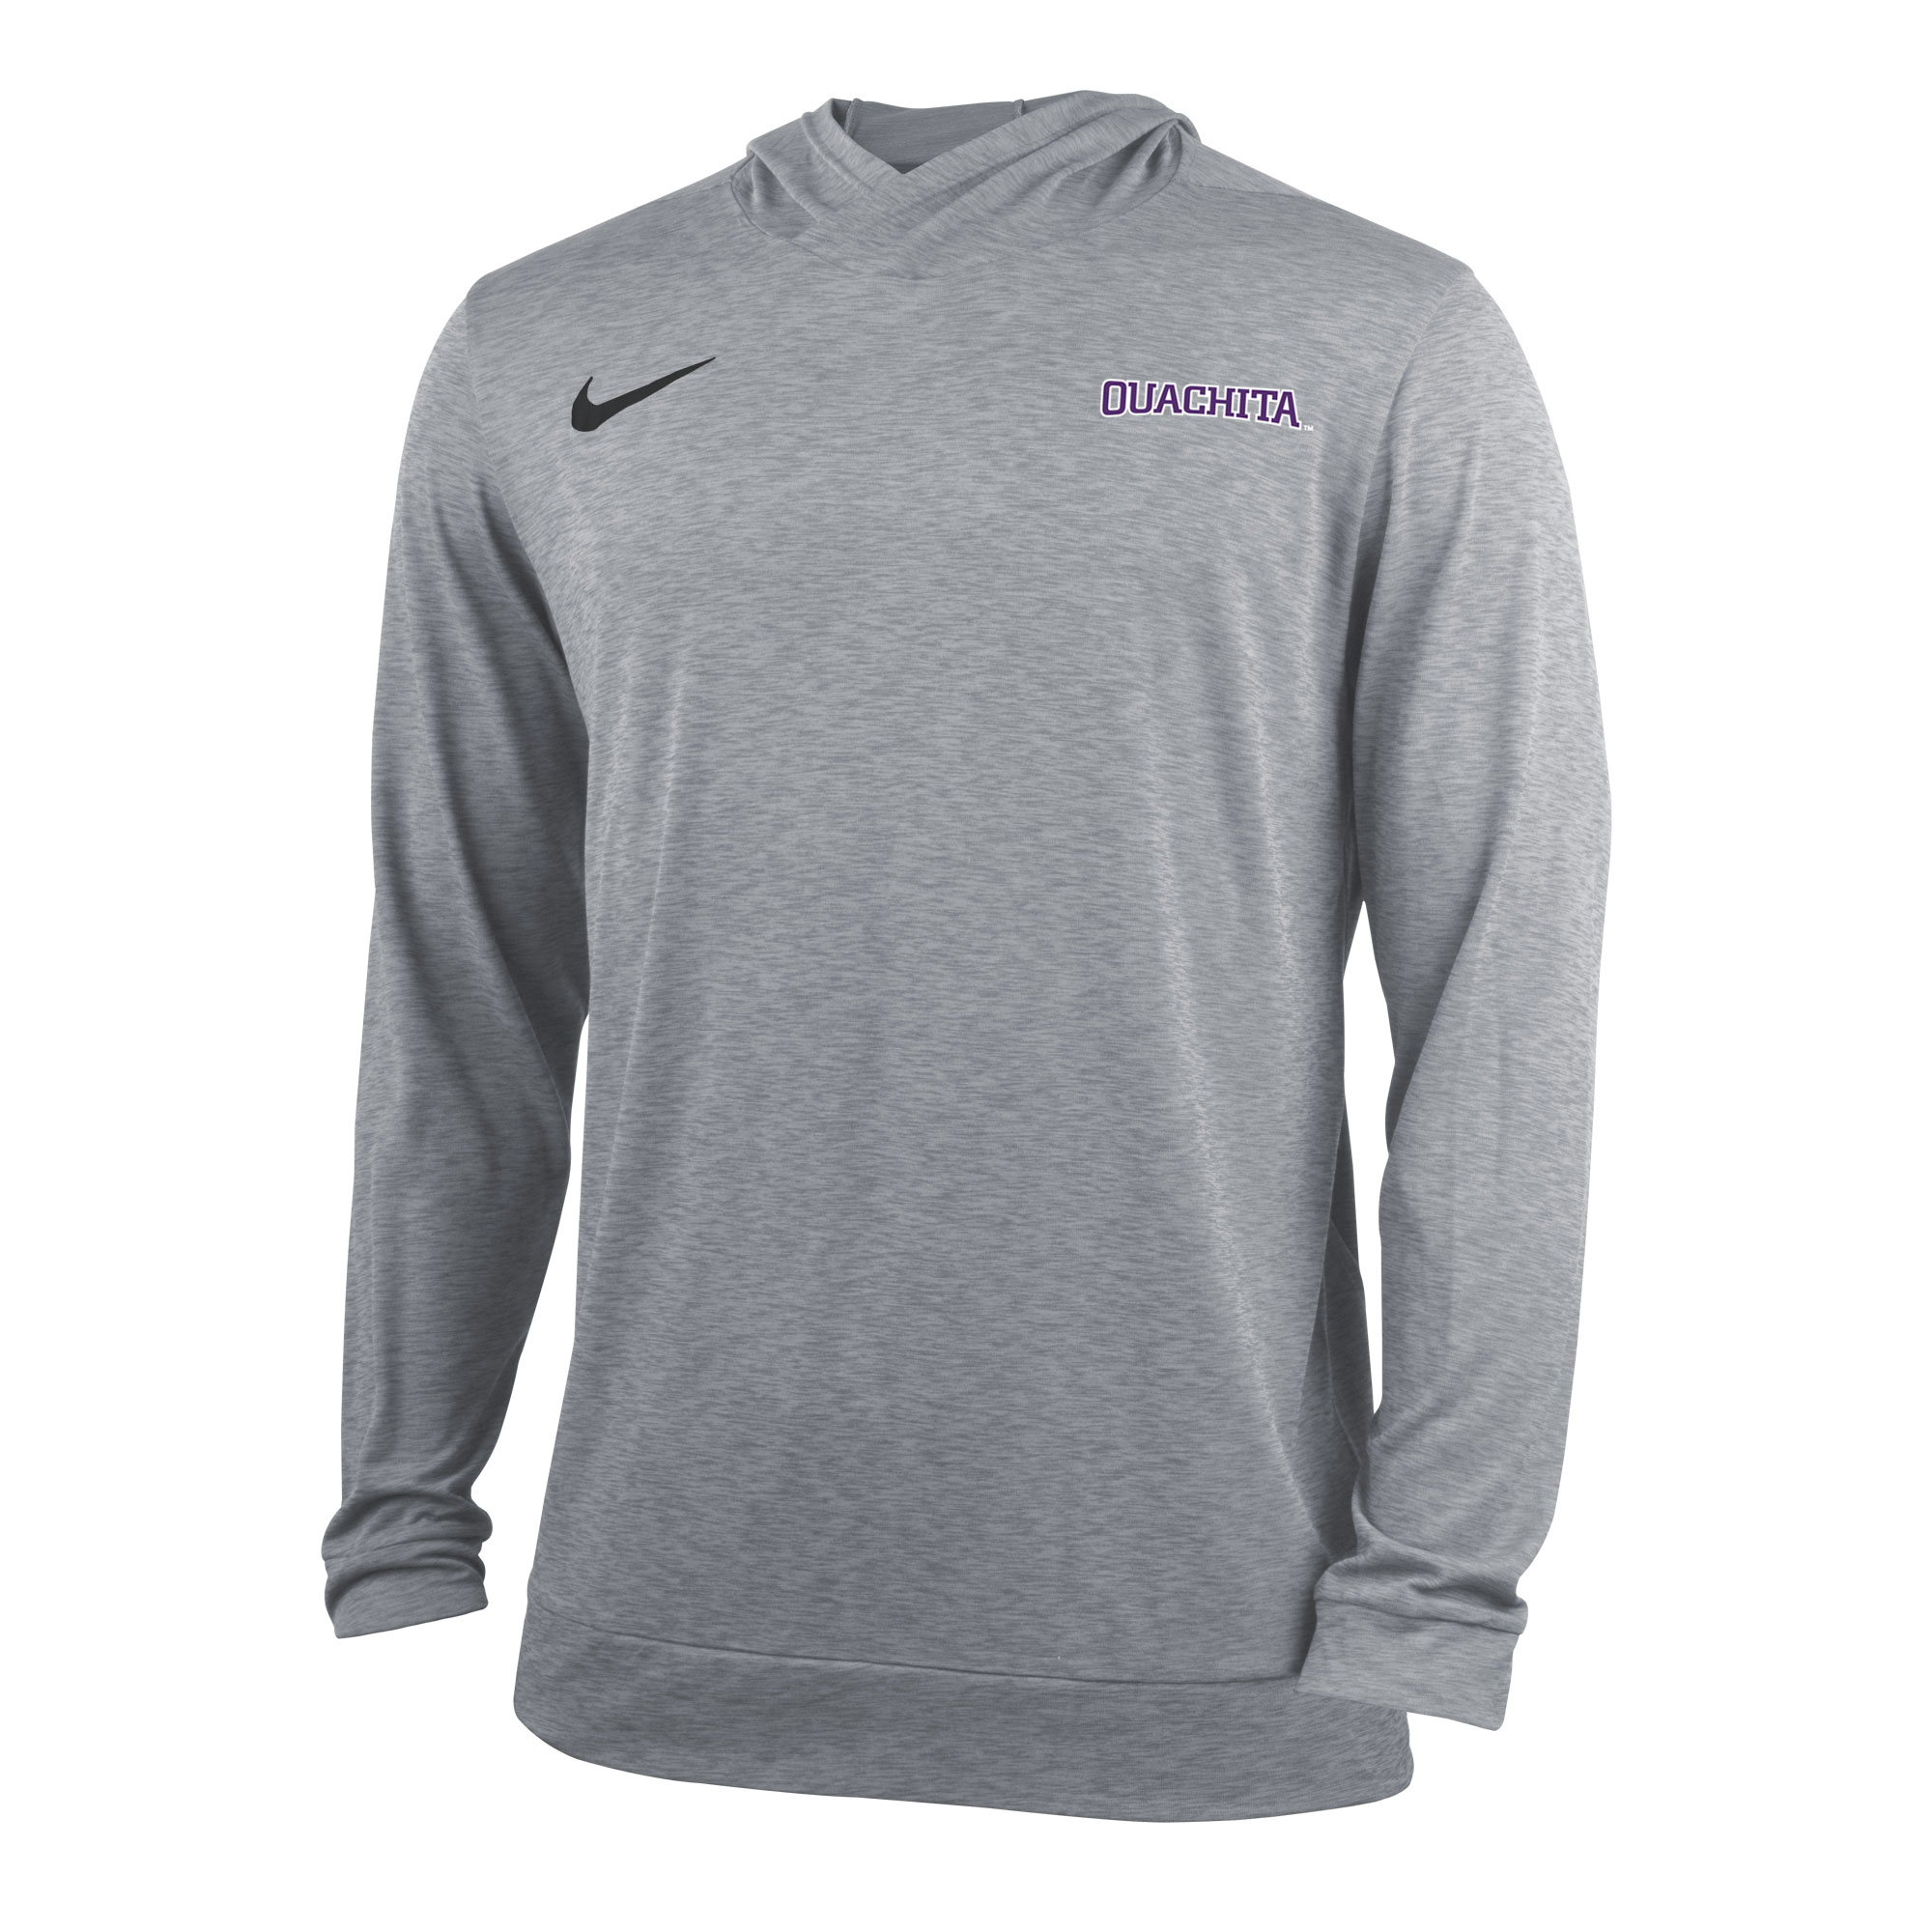 OUACHITA NIKE DRY TOP LS HOODY